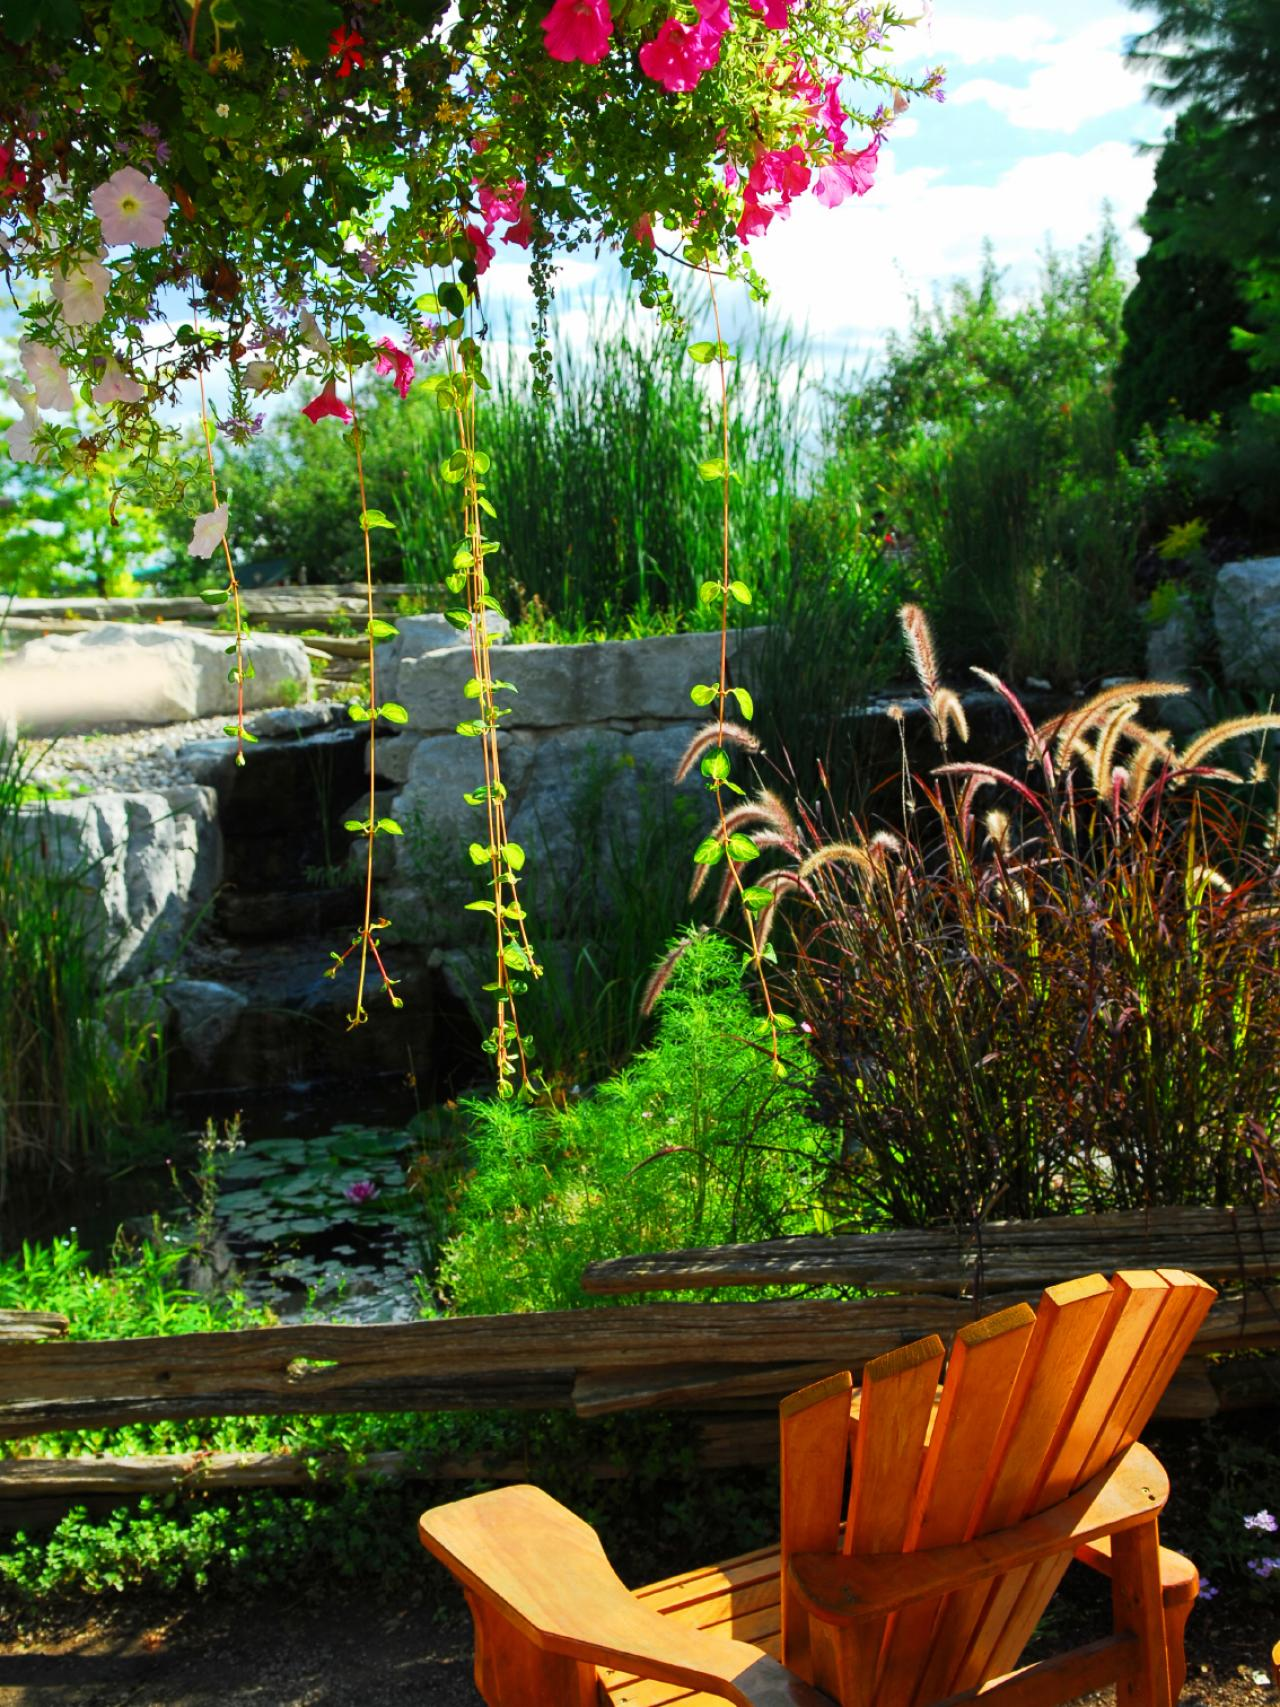 Planning your outdoor space hgtv for Plan your garden ideas